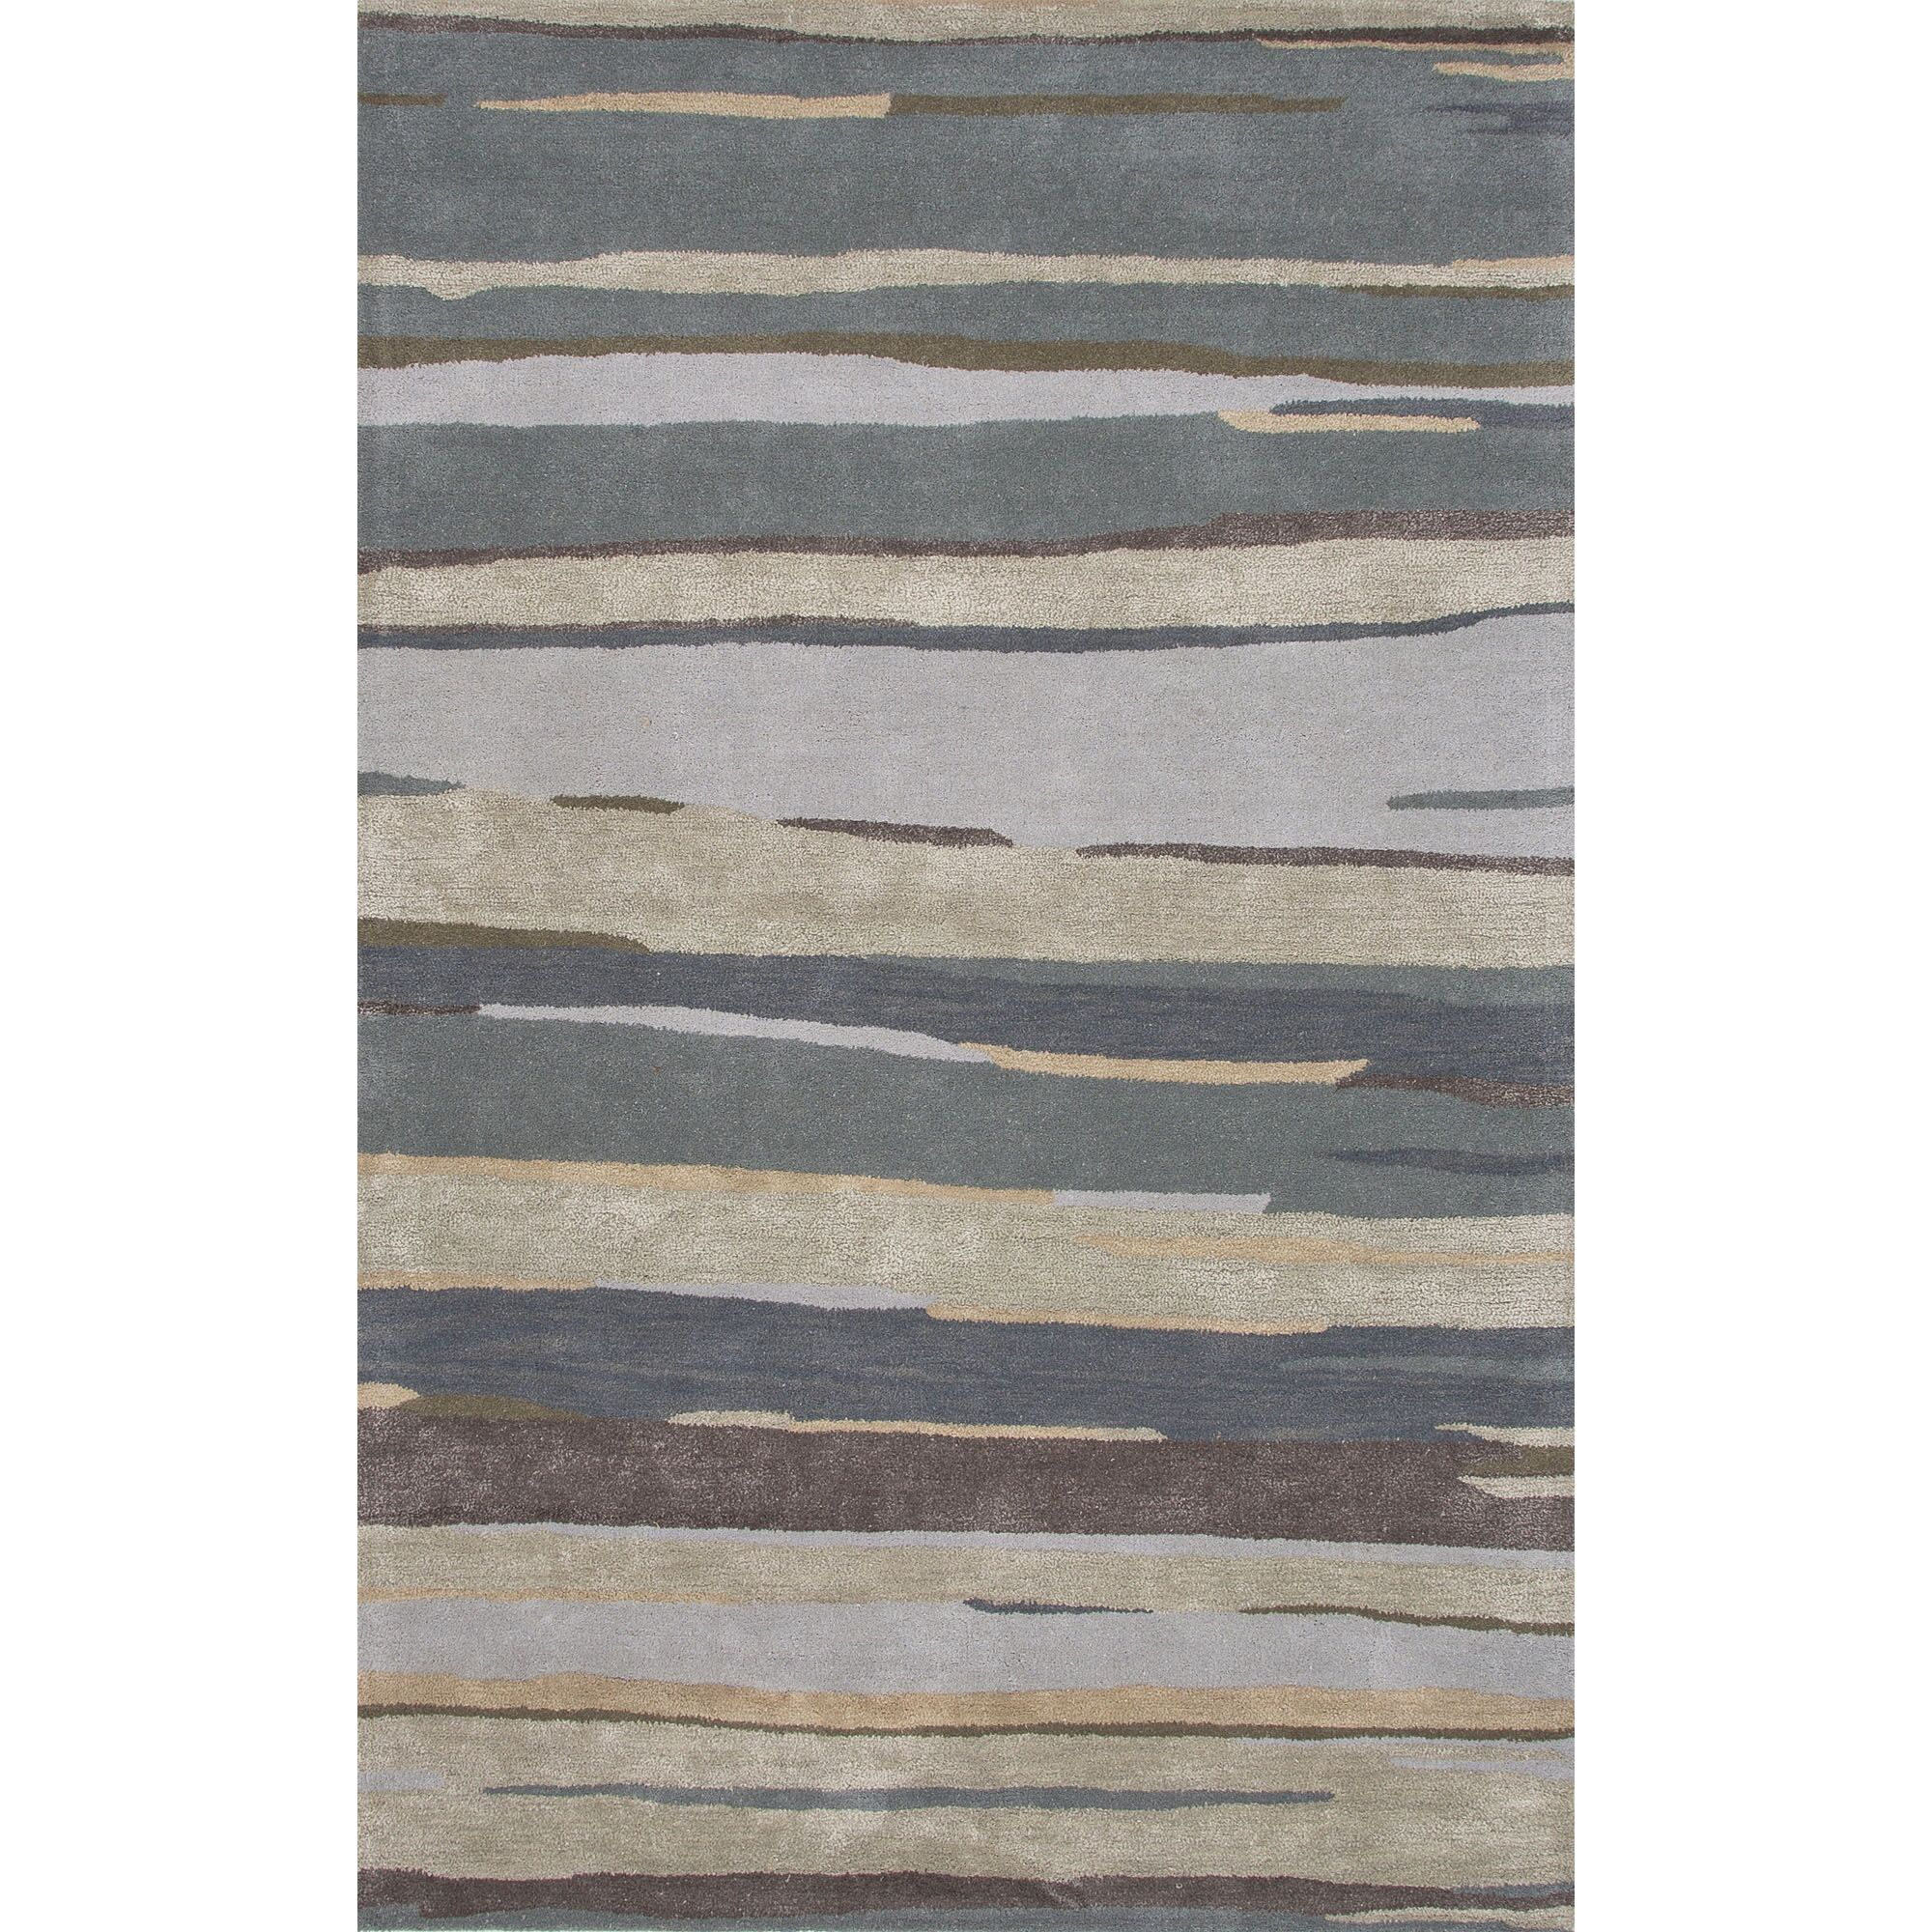 Williamsfield Hand-Tufted Gray/Blue Area Rug Rug Size: Rectangle 2' x 3'